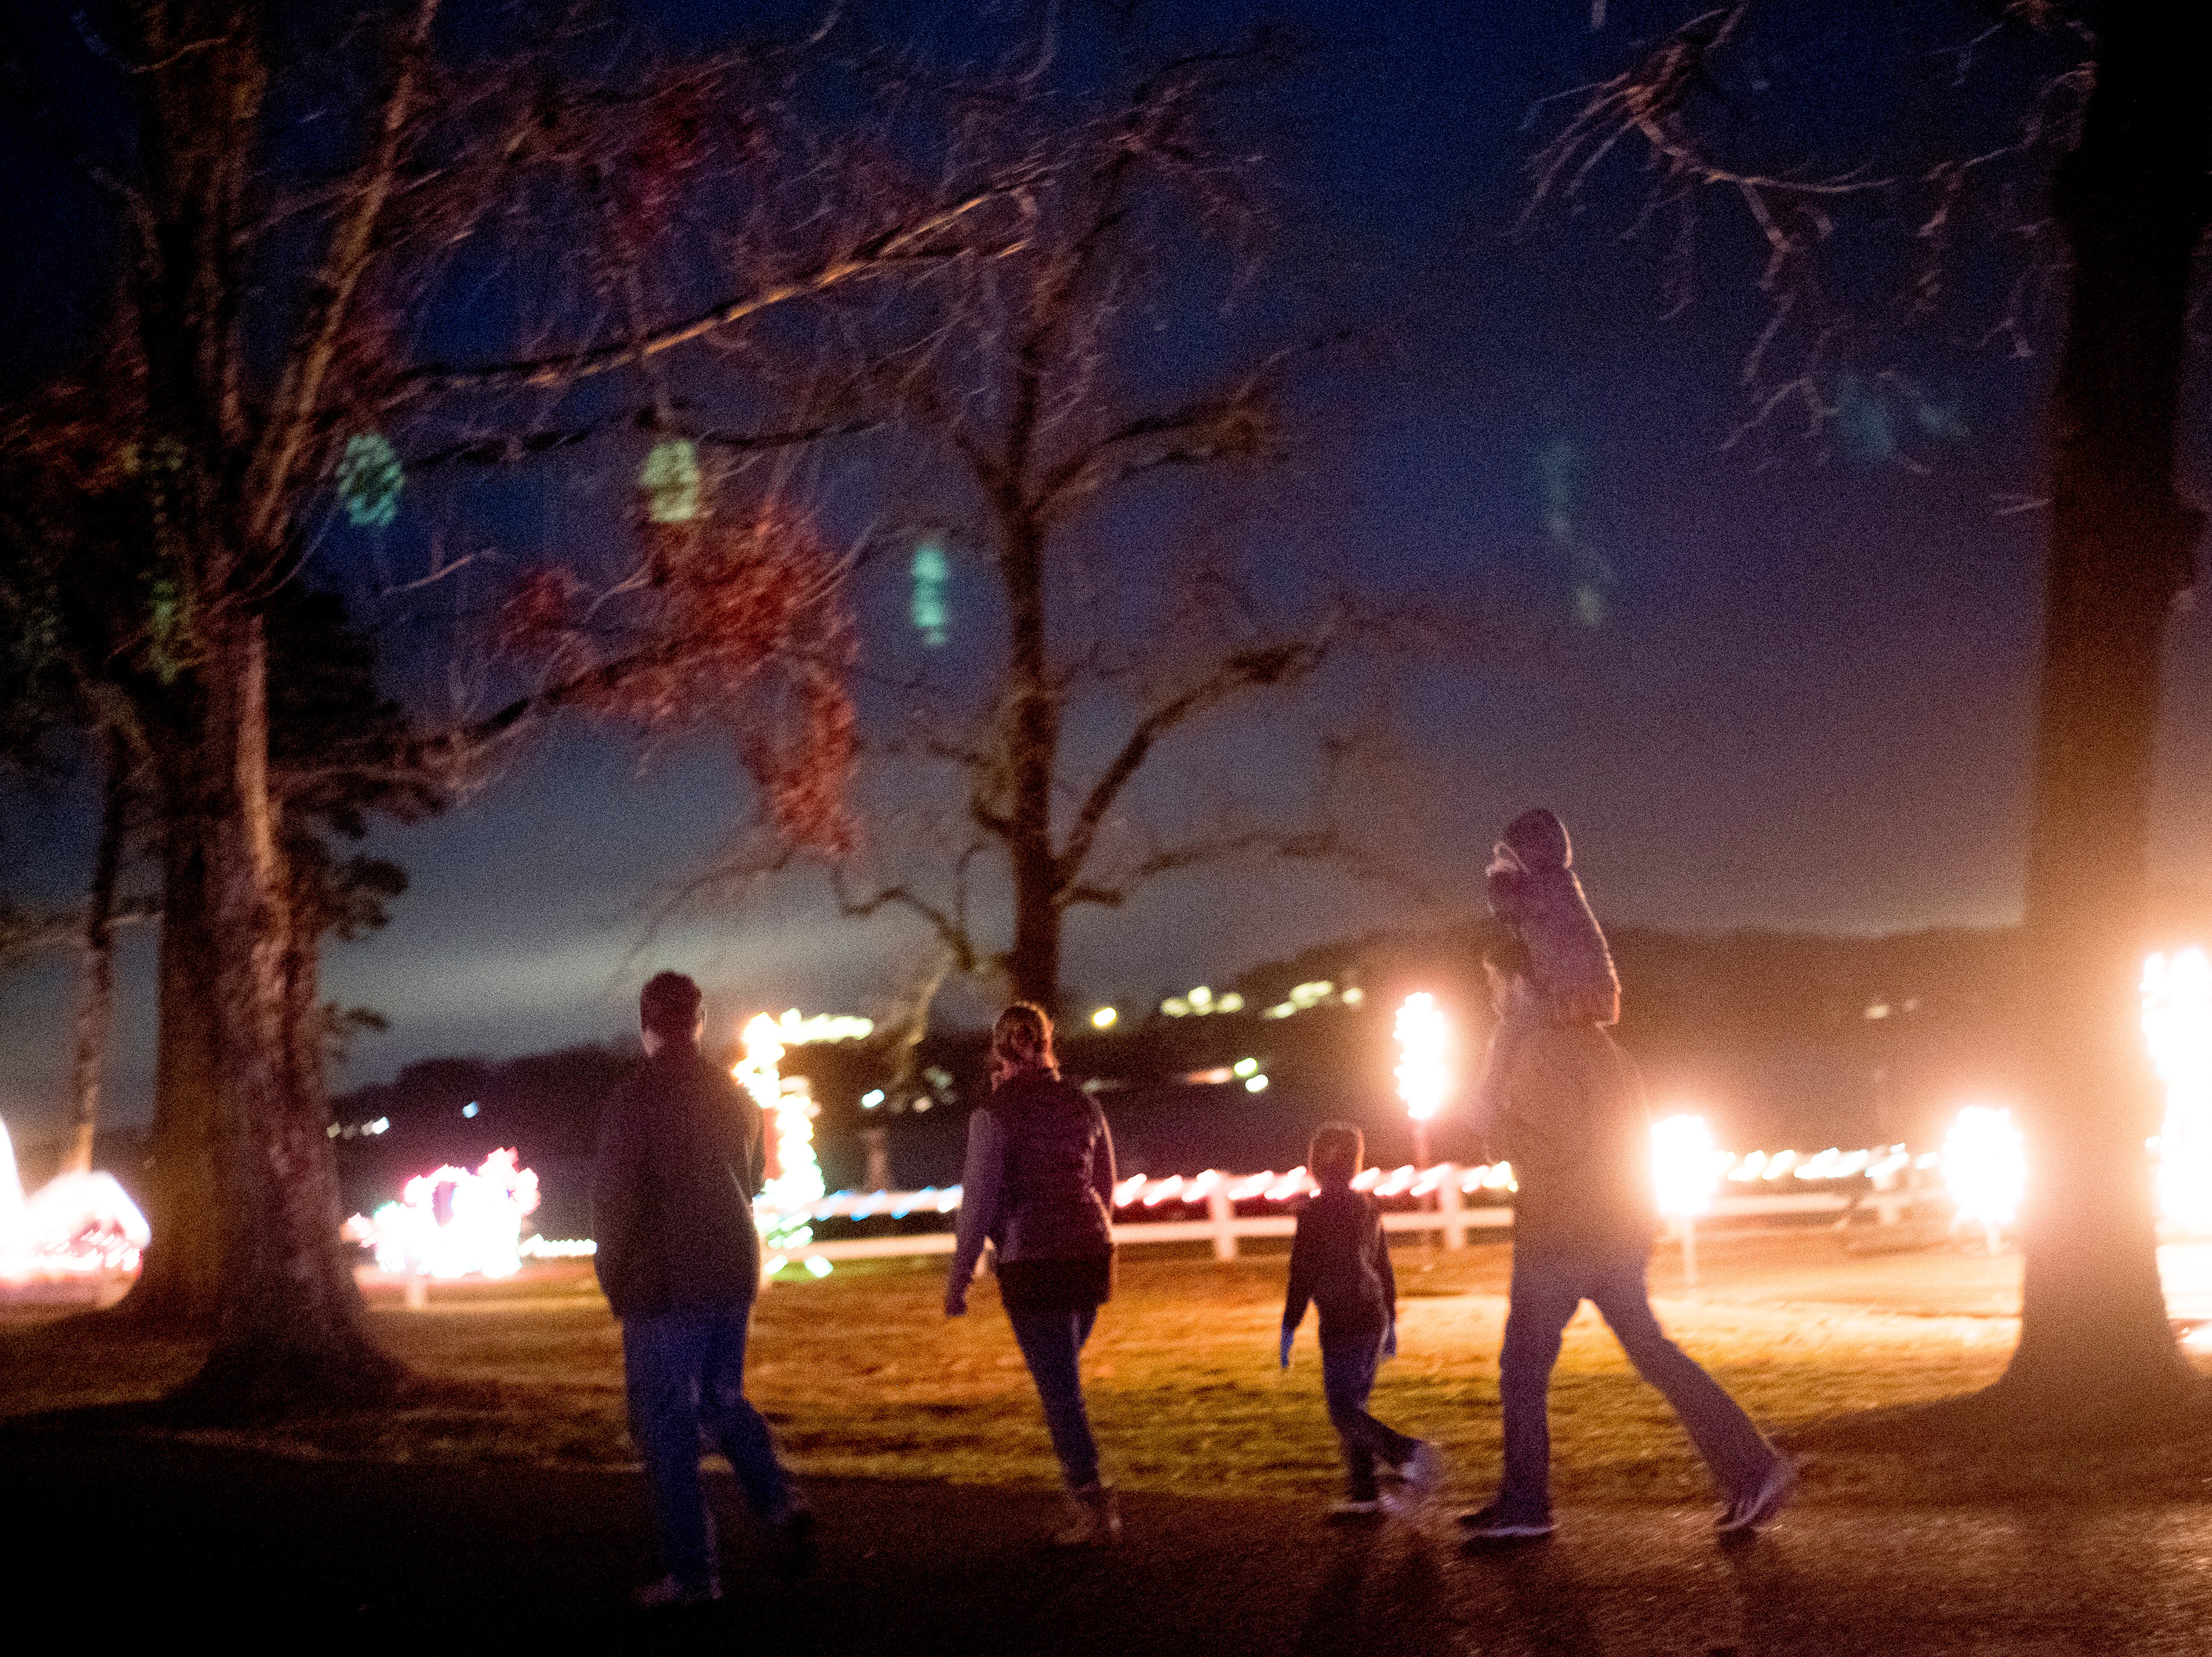 Visitors walk along a path at Knox CountyÕs 20th annual Holiday Festival of Lights kick off at The Cove at Concord Park in Farragut, Tennessee on Friday, December 21, 2018. The family-friendly event is free and will run through Dec. 29 from 6 to 9 p.m., excluding Christmas Eve and Christmas Day.